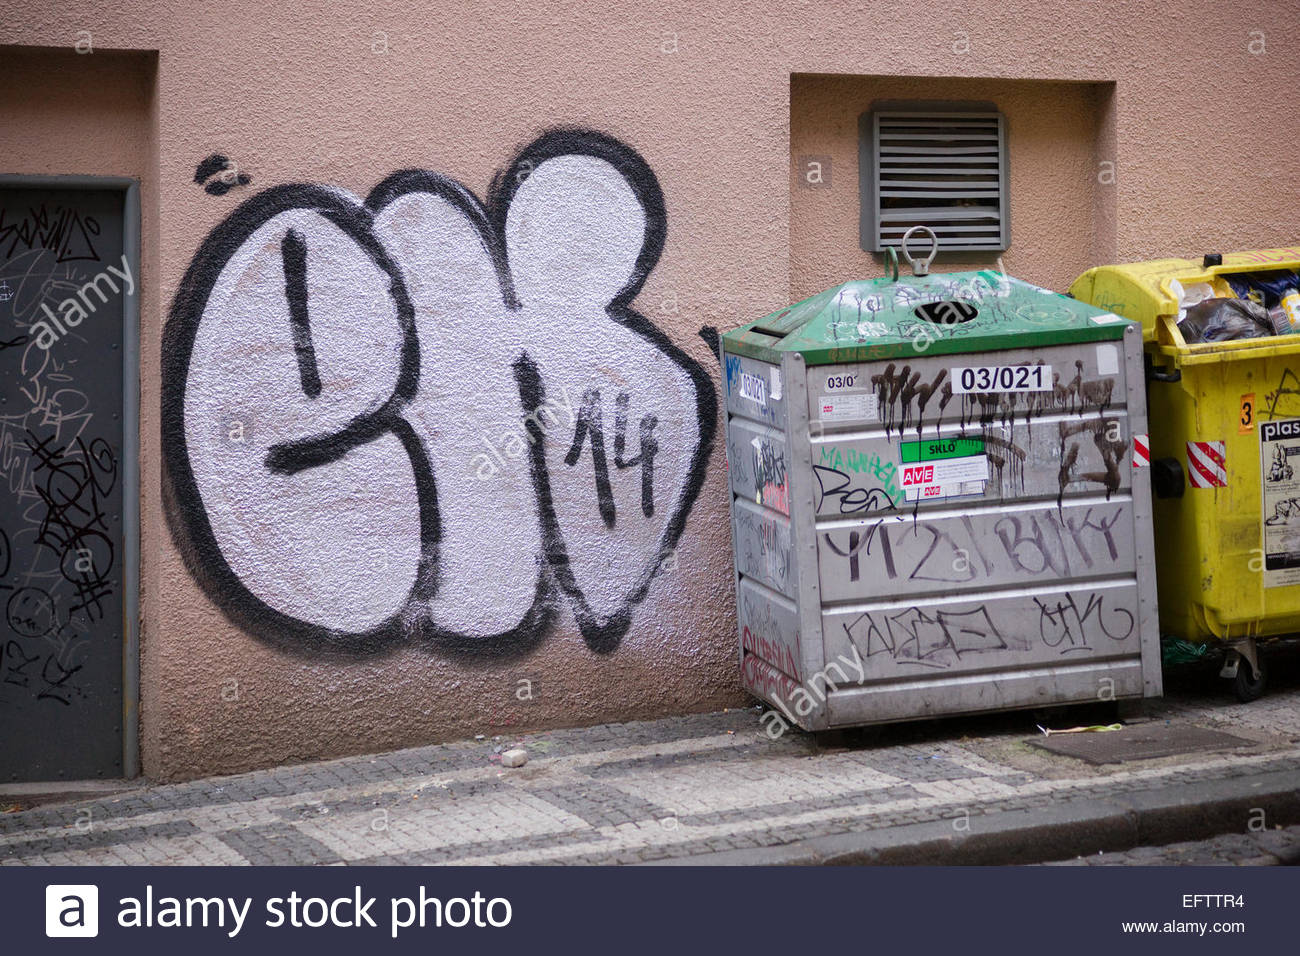 Prague Czech Republic Nobody Graffiti Vandalism Writing On Wall Street Art Architecture And Buildings Recycling Bins